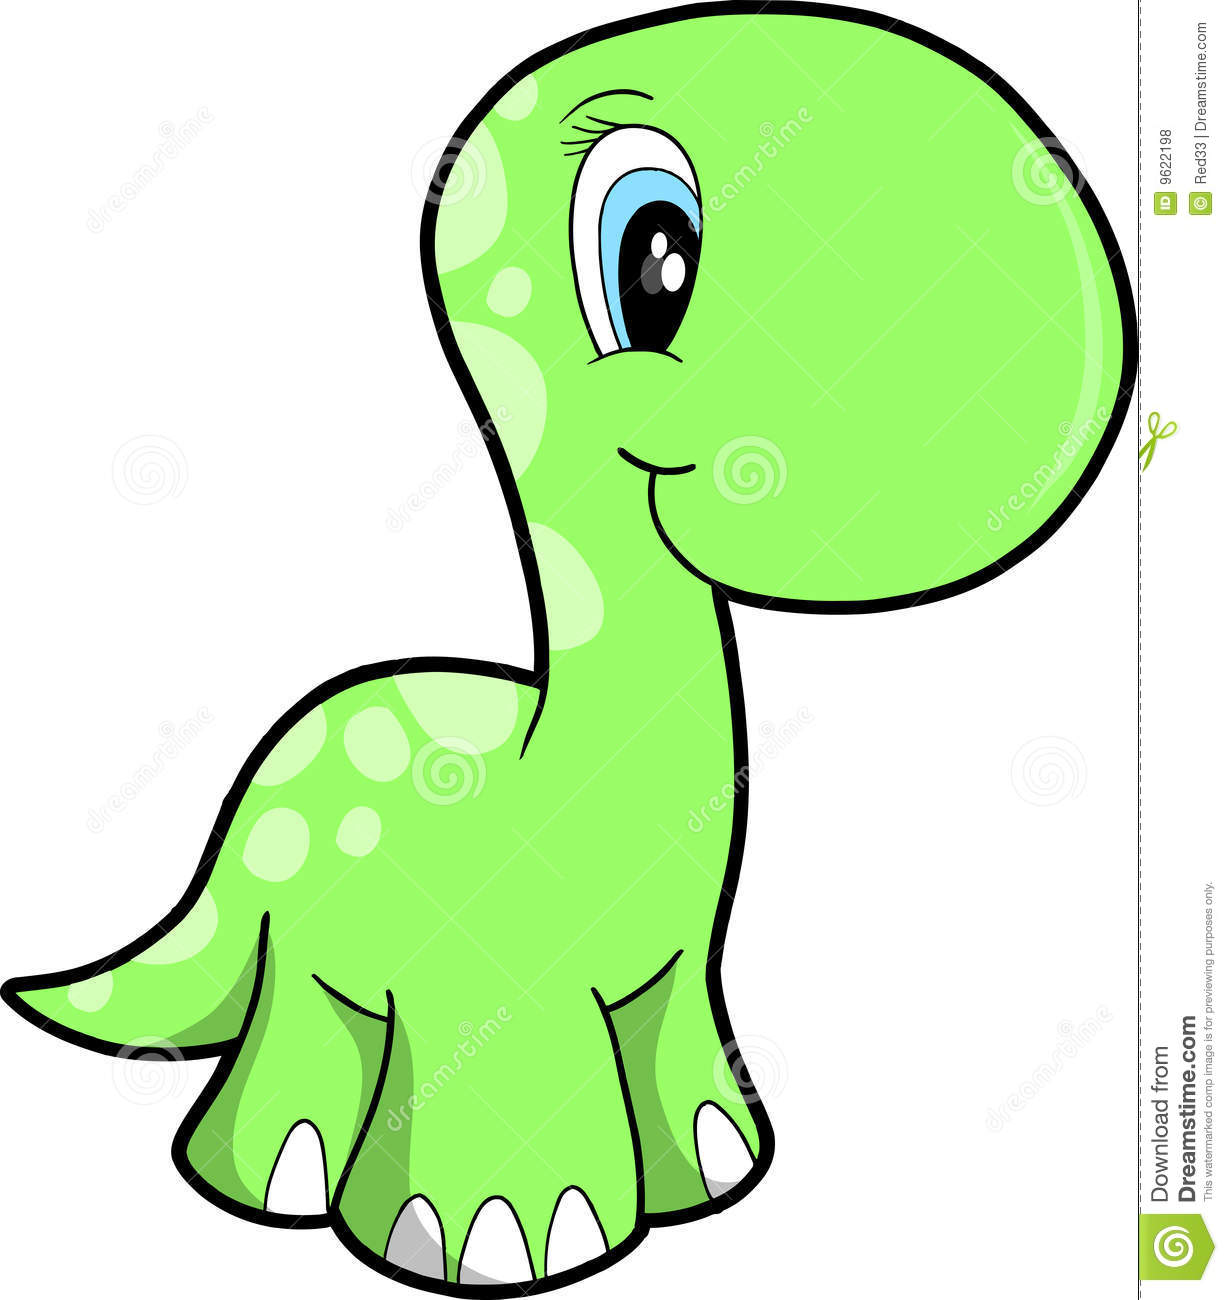 hight resolution of dinosaurs clipart cute dinosaur vector stock illustrations vectors graphic black and white